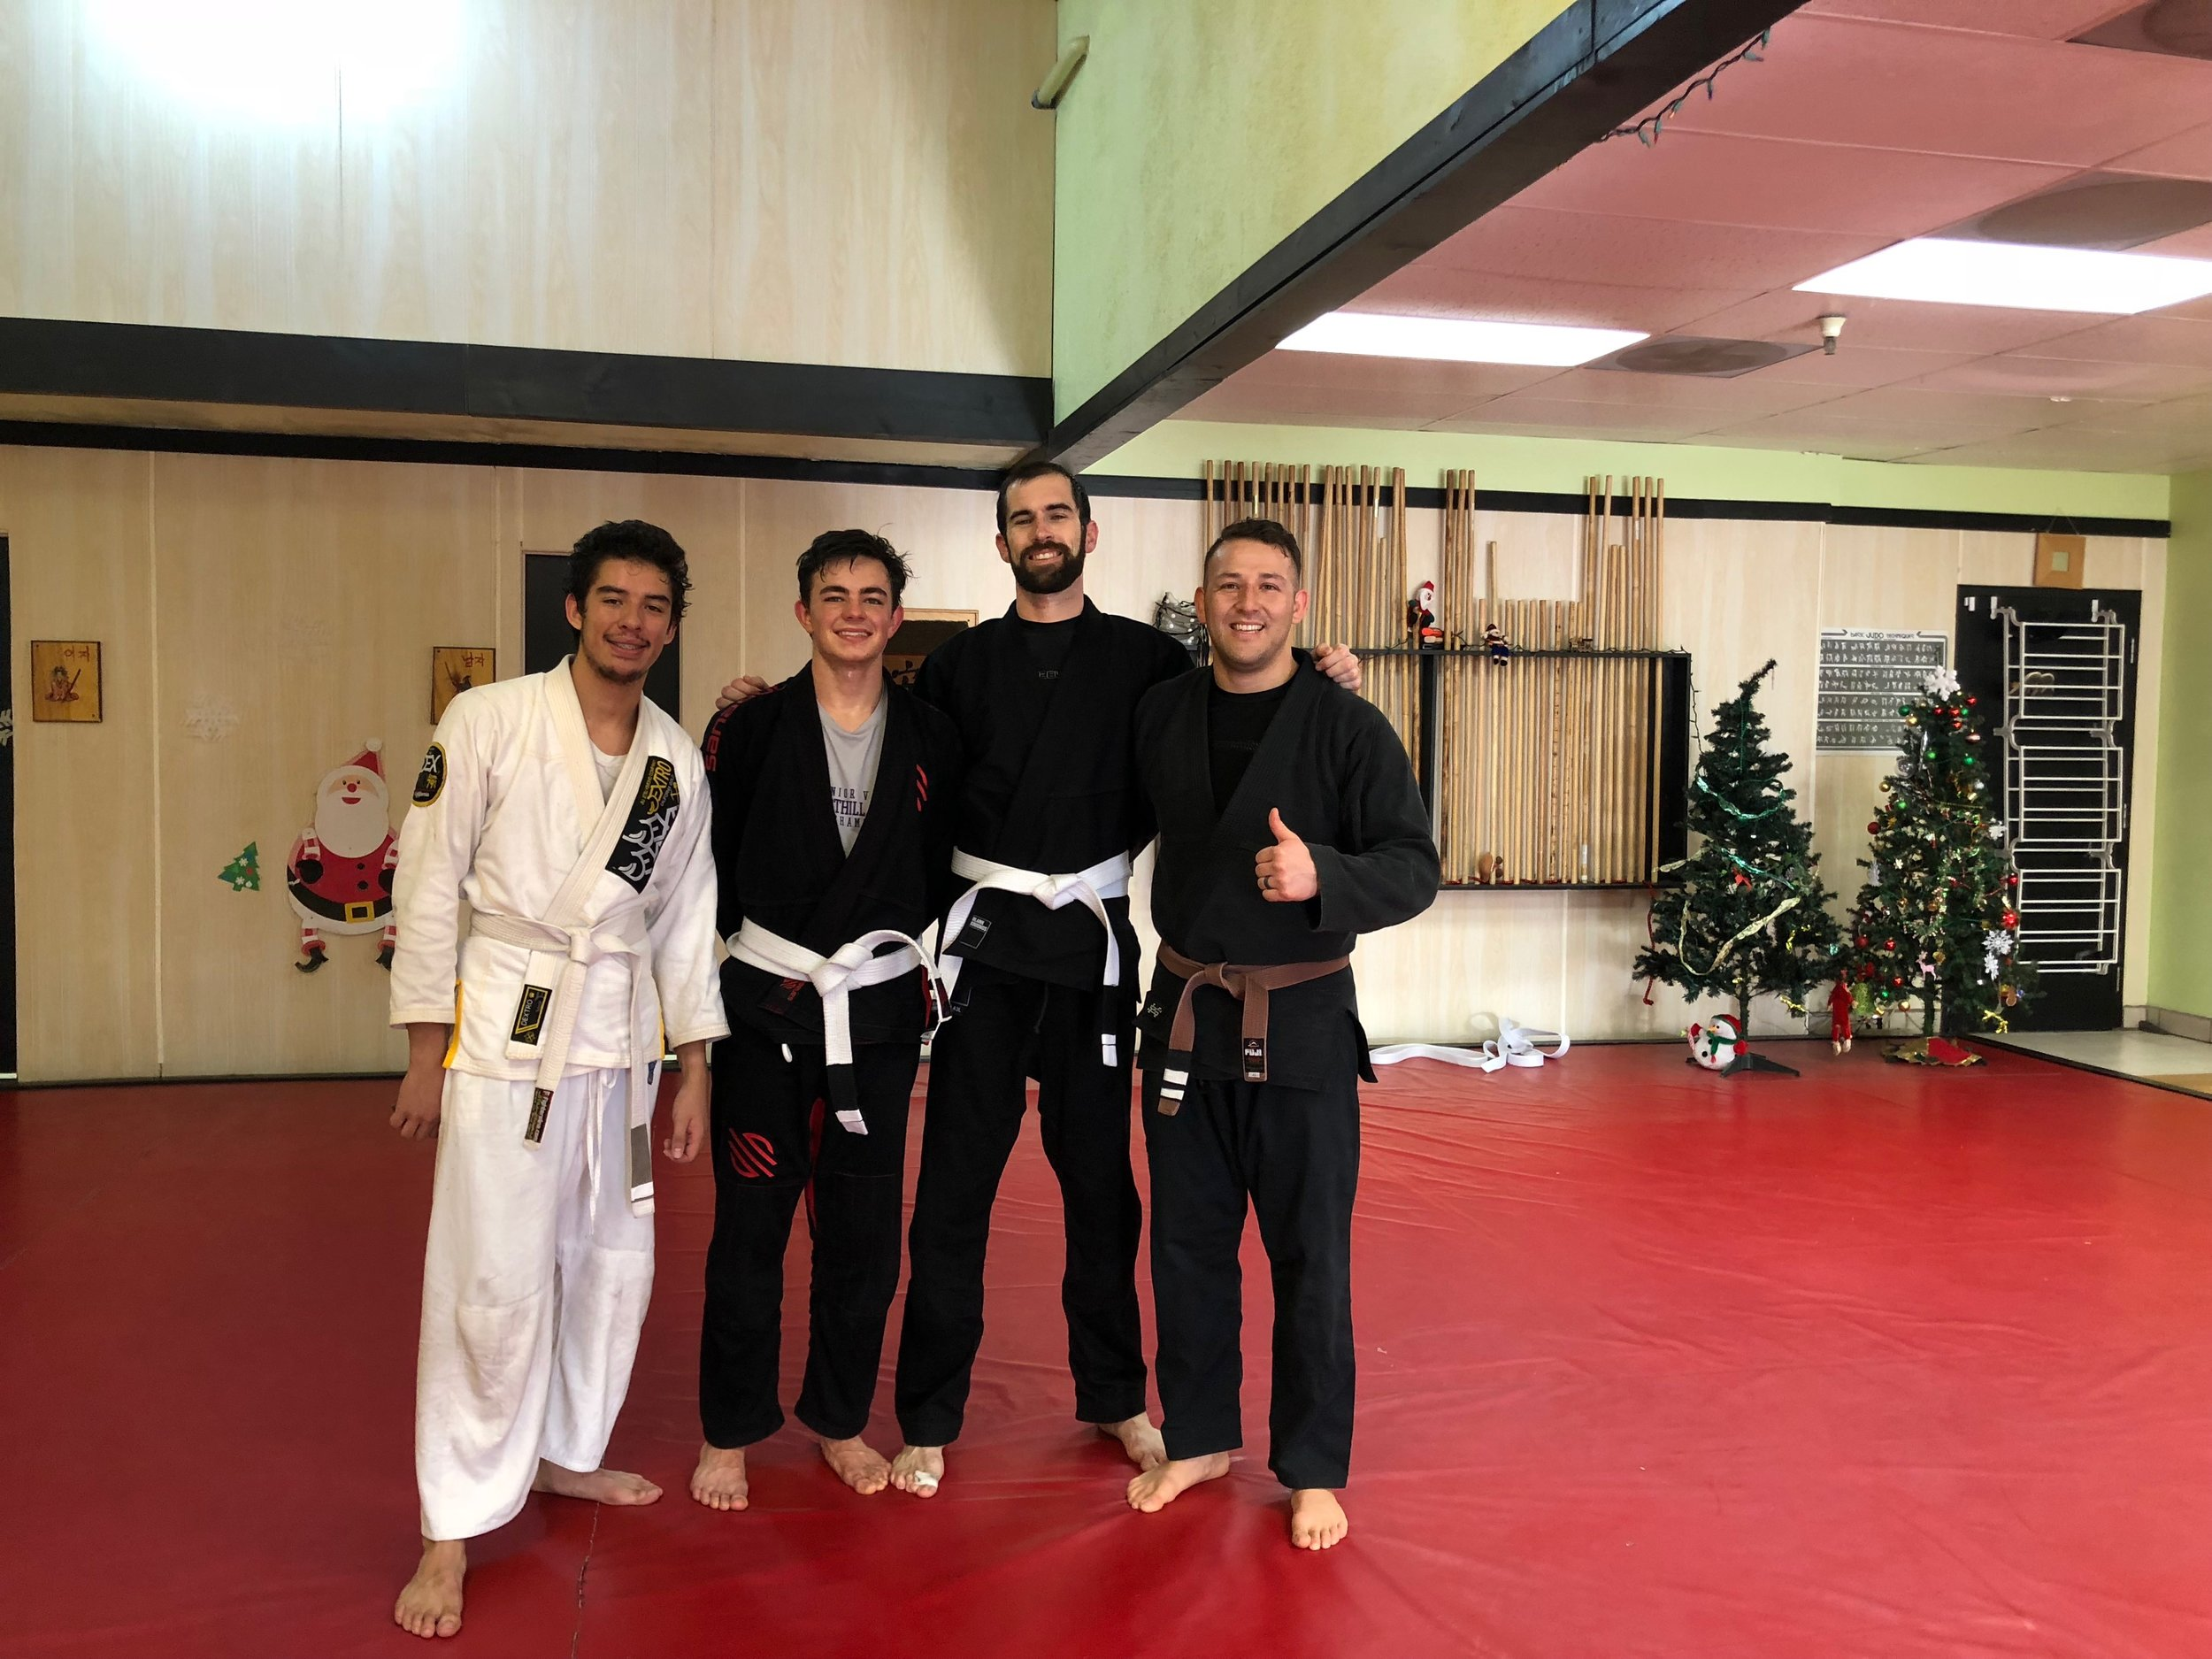 "💥 💥 💥 Extremely proud to have awarded our first stripes to Kelvin 🥋, Bobby 🥋 , and Darren 🥋 , who stayed after class to demonstrate mastery over our ""Beginners Study Guide.""  Many of our other students are right there(or getting close) as well.  Video coming soon.  Way to go guys!!! 💪   #jiujitsuforeverybody"